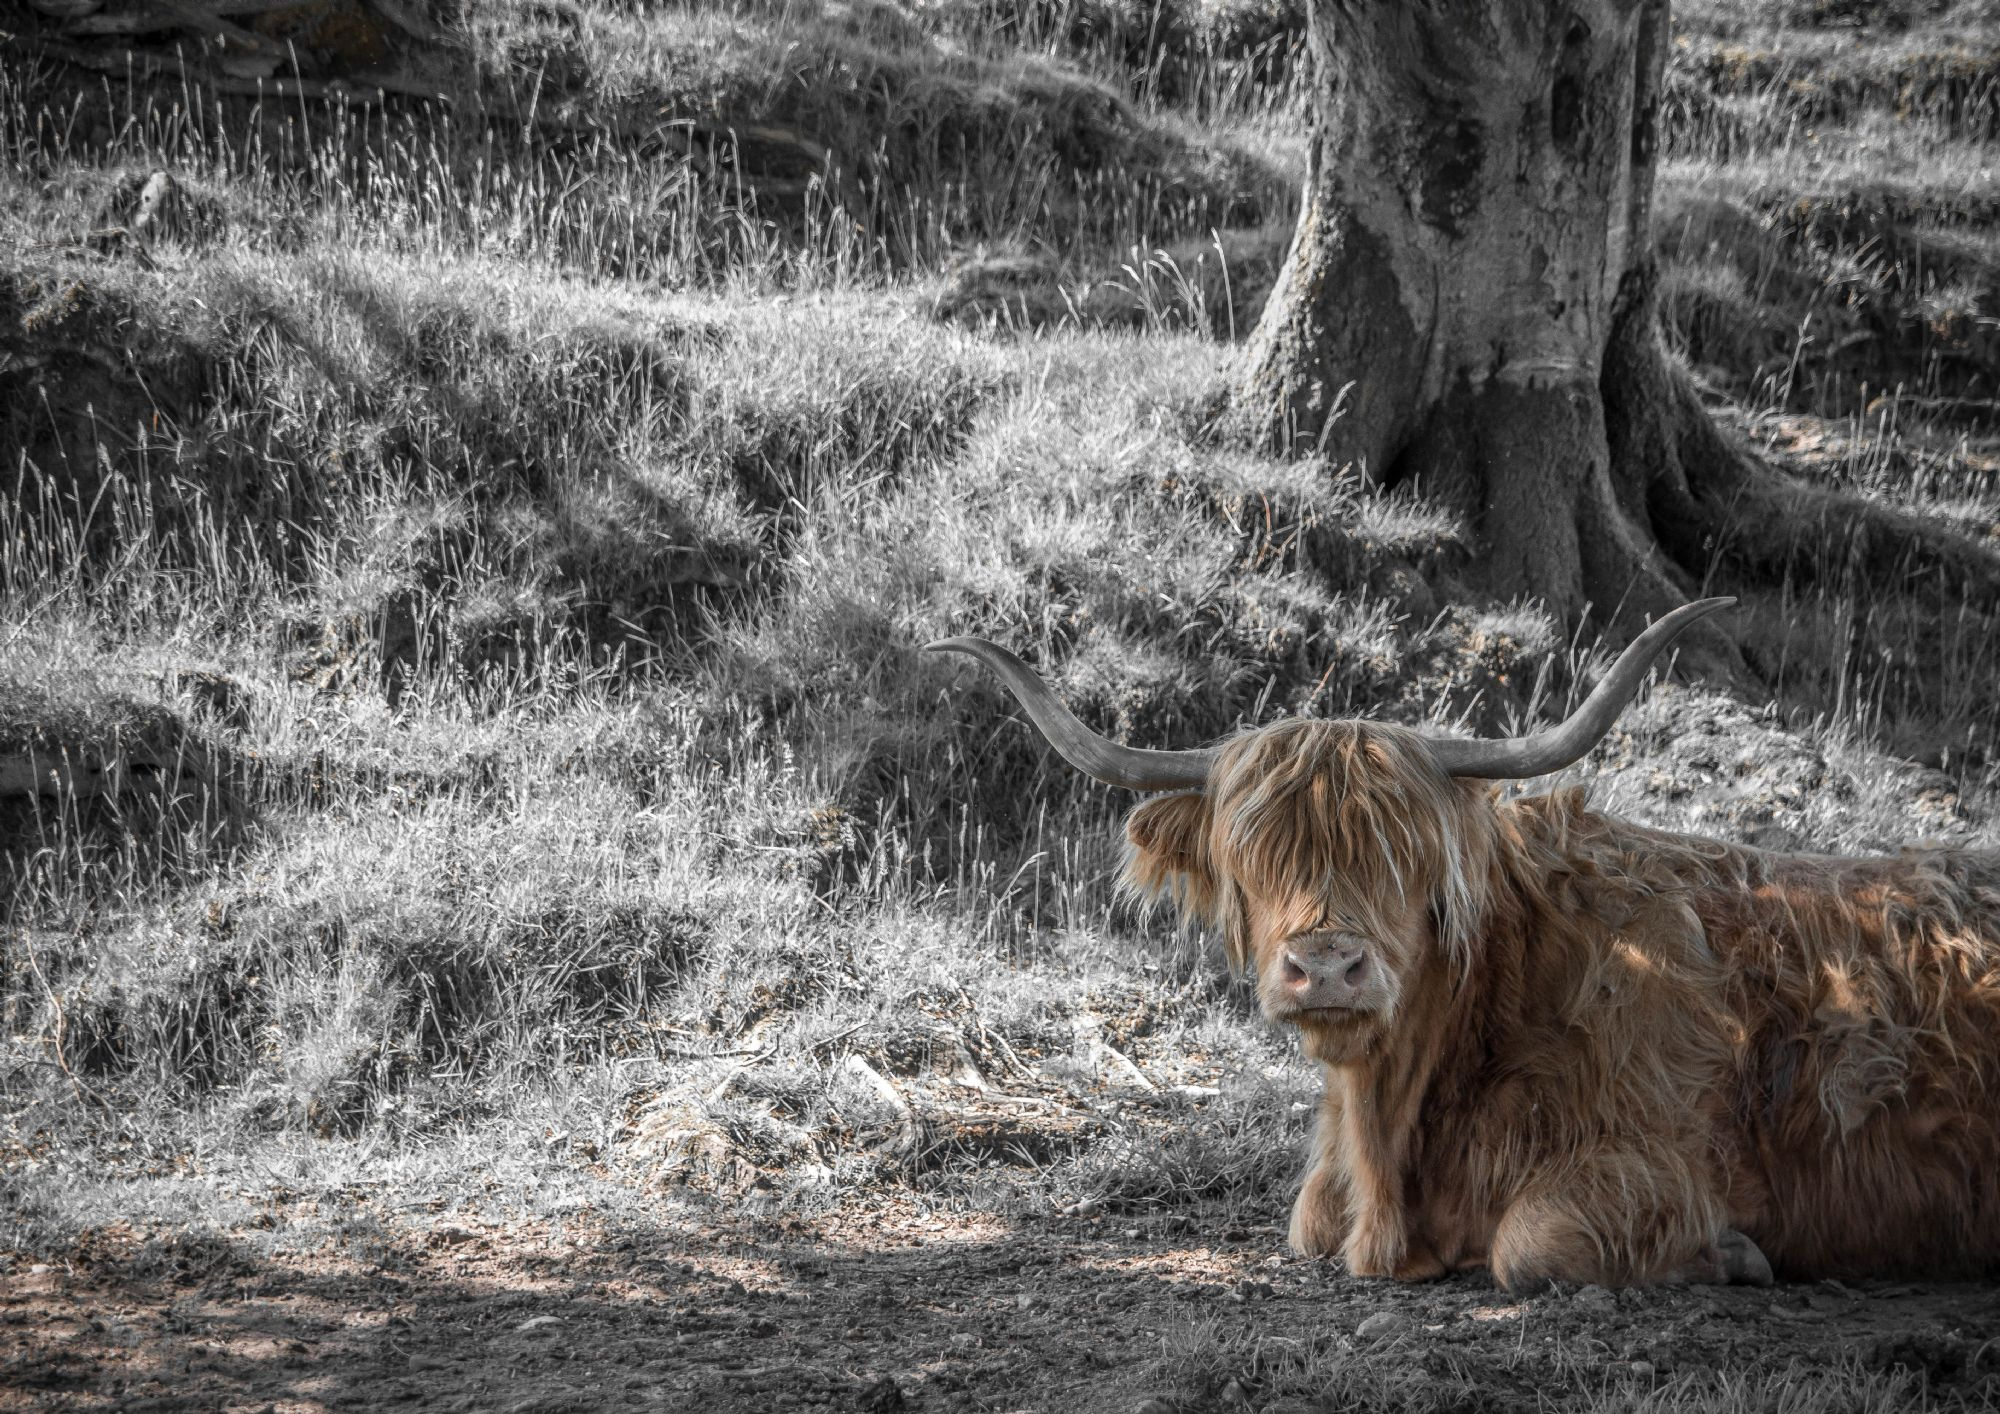 A nice Coo in the nature